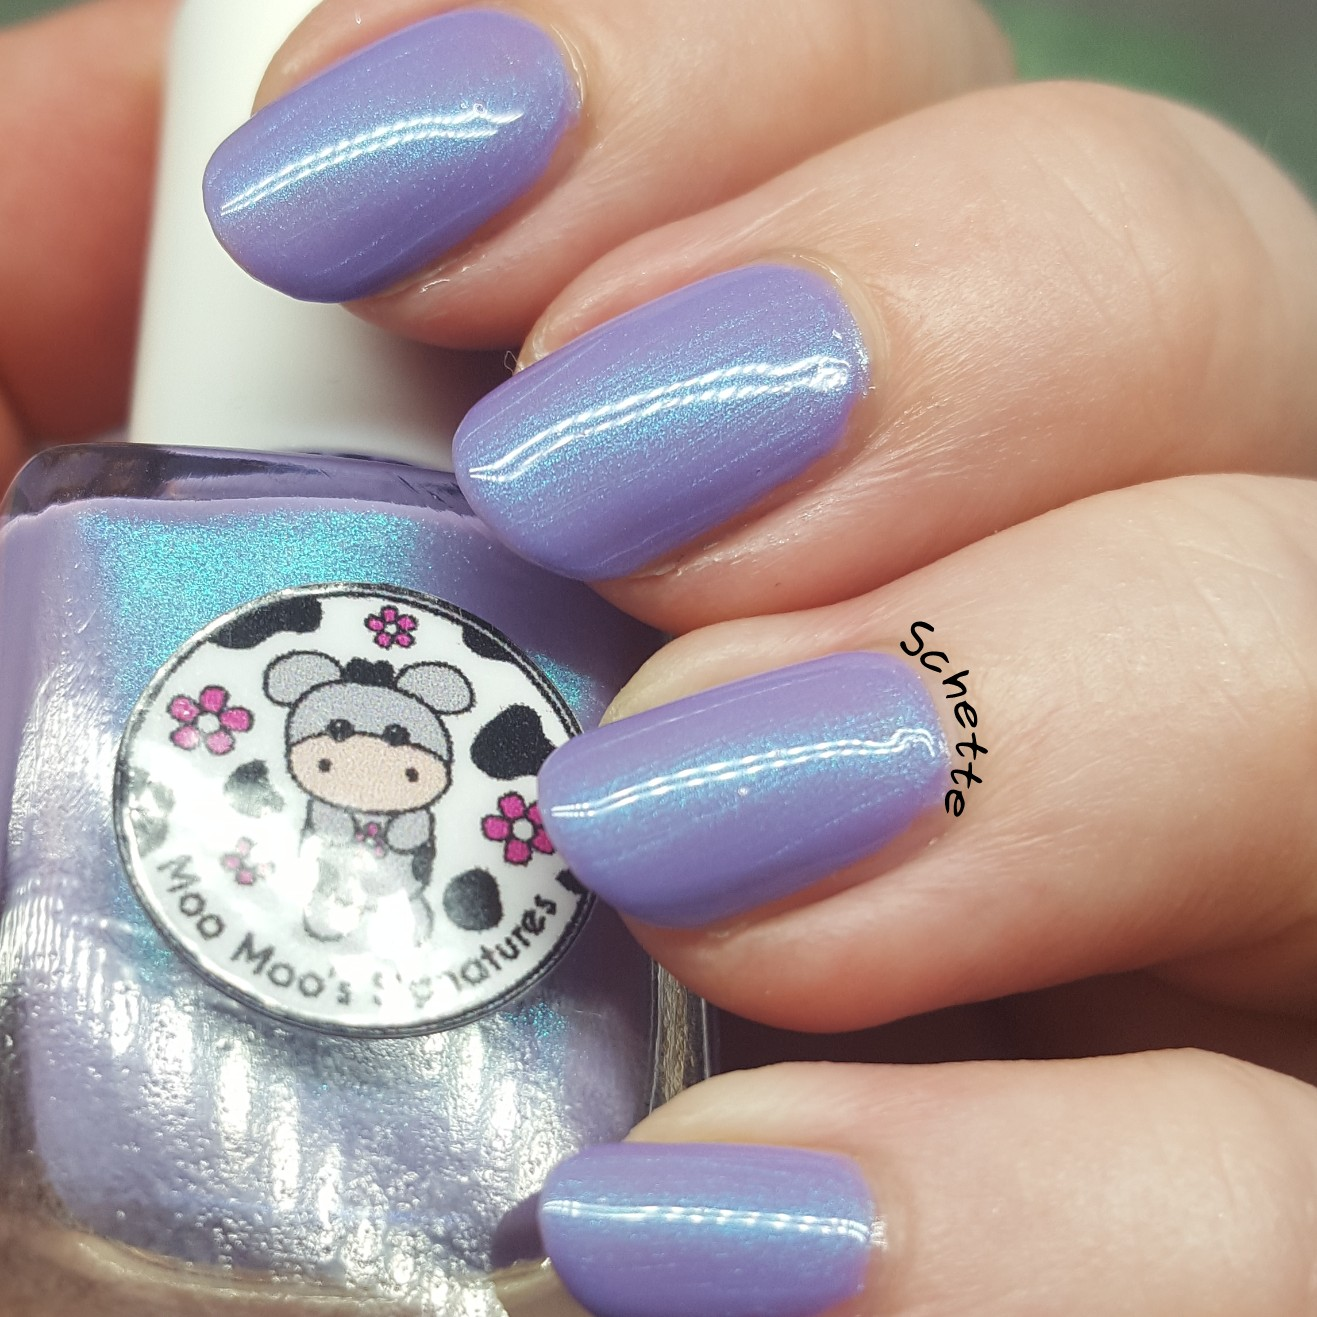 Moo Moo's Signatures - Frozen Lavender